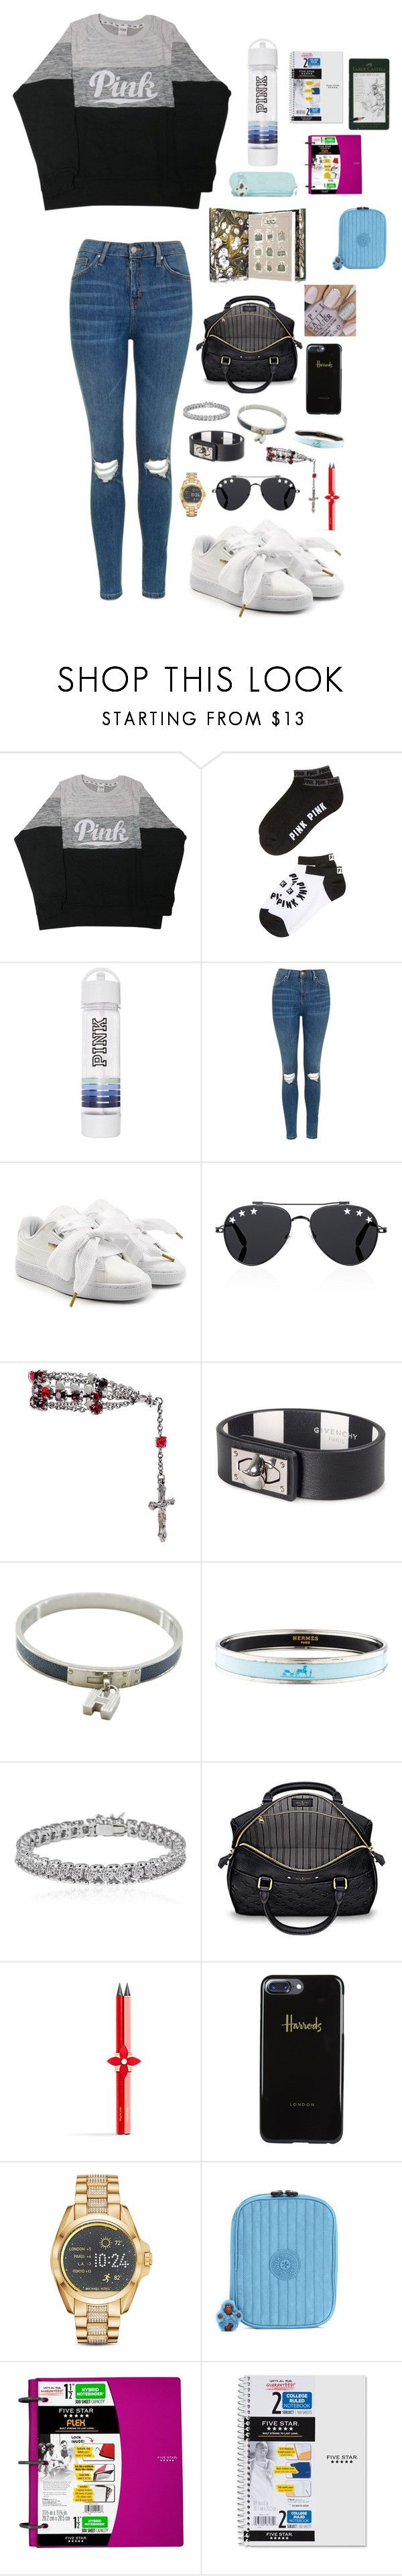 """Sin título #1540"" by sabrinnatorres on Polyvore featuring moda, Victoria's Secret, Topshop, Puma, Givenchy, Hermès, Apples & Figs, Empreinte, Harrods y Michael Kors"